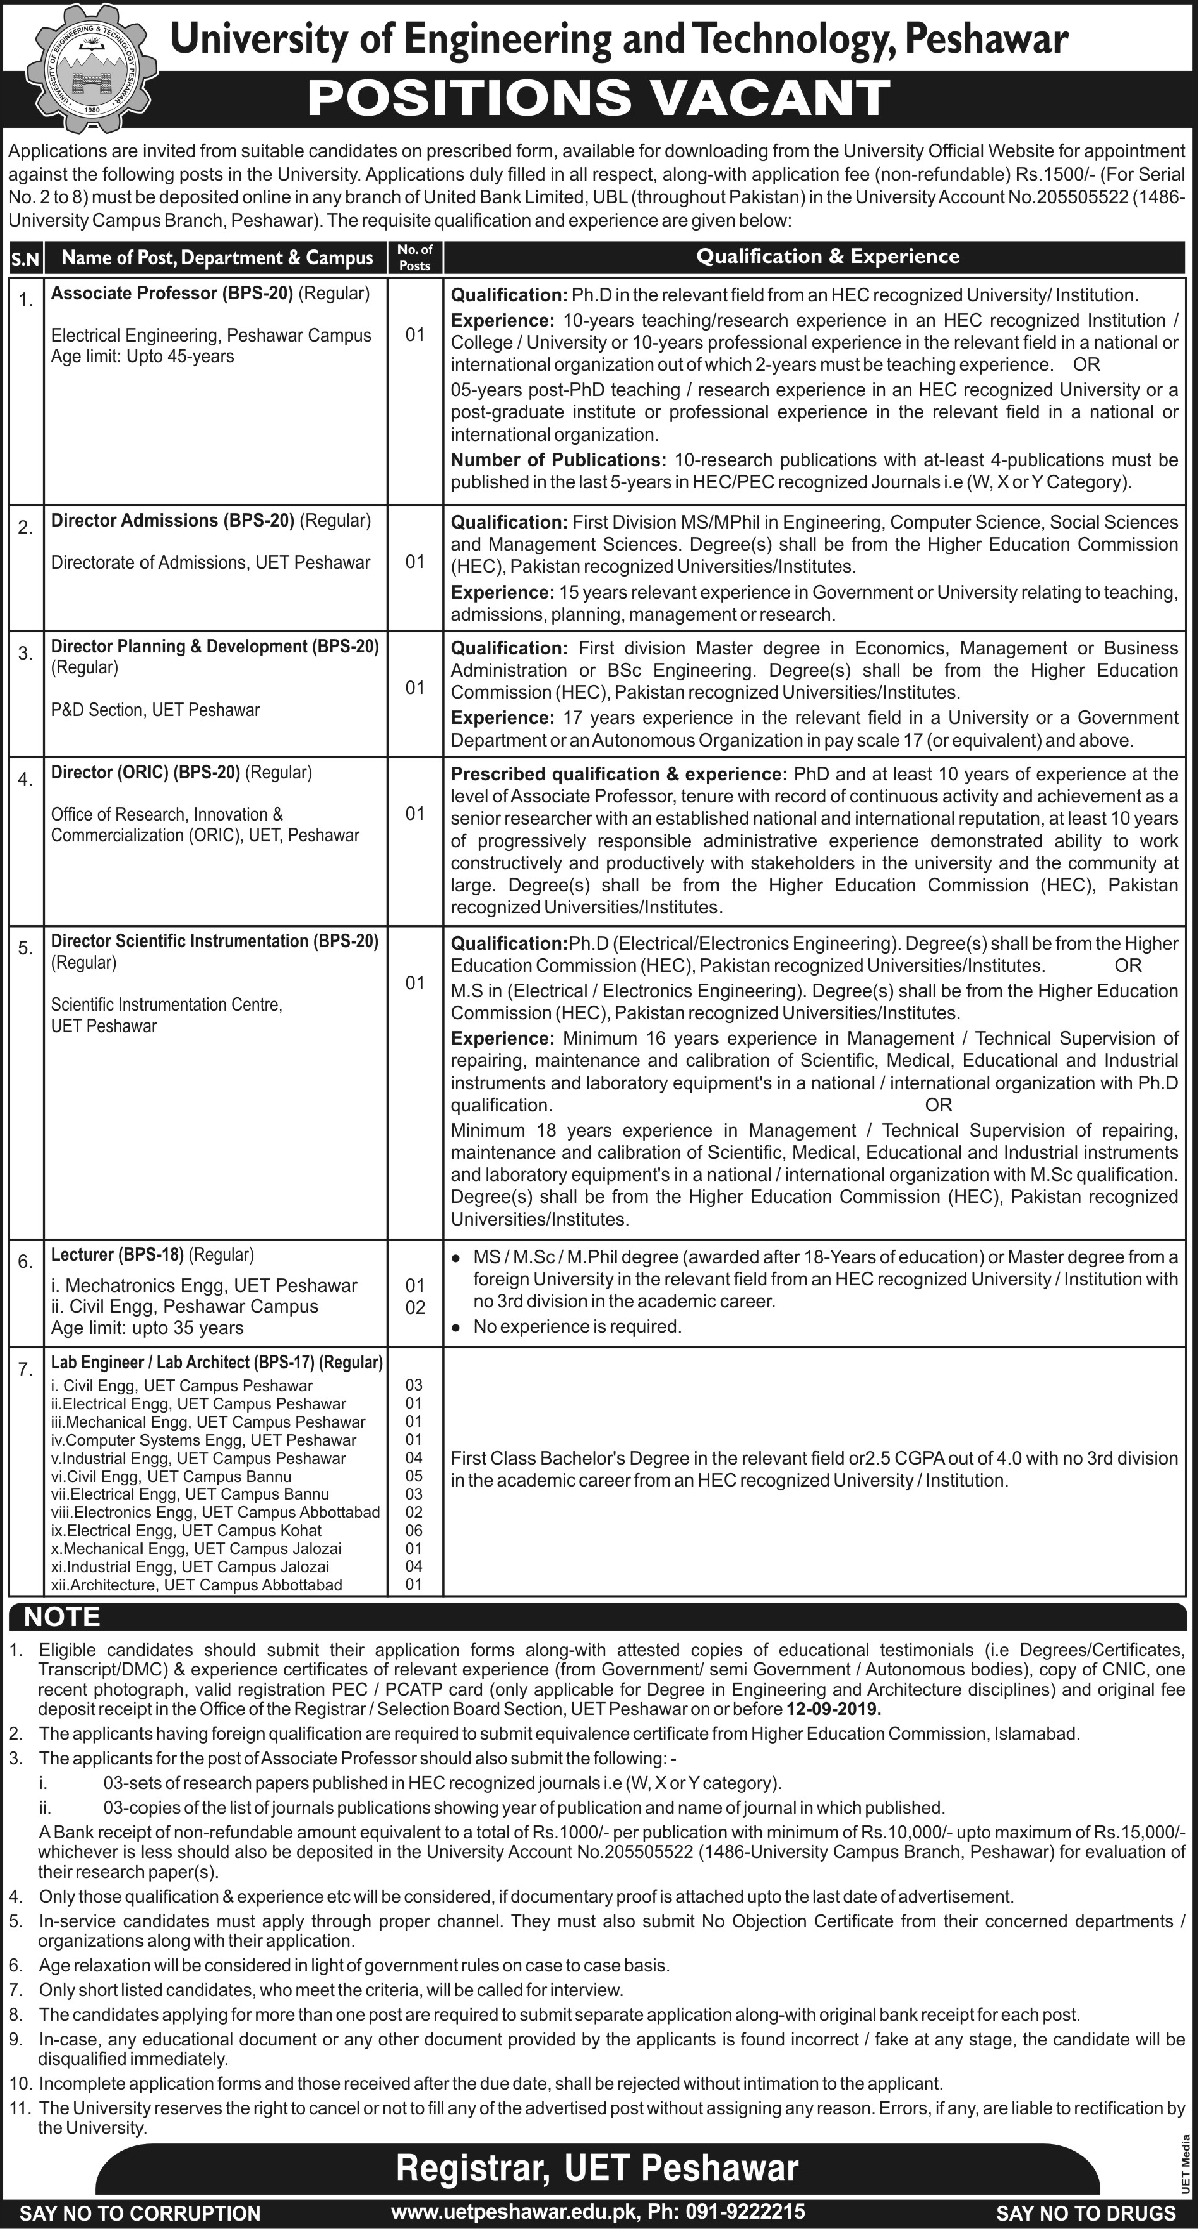 University of Engineering & Technology UET Peshawar Jobs 2019 Download Application Form